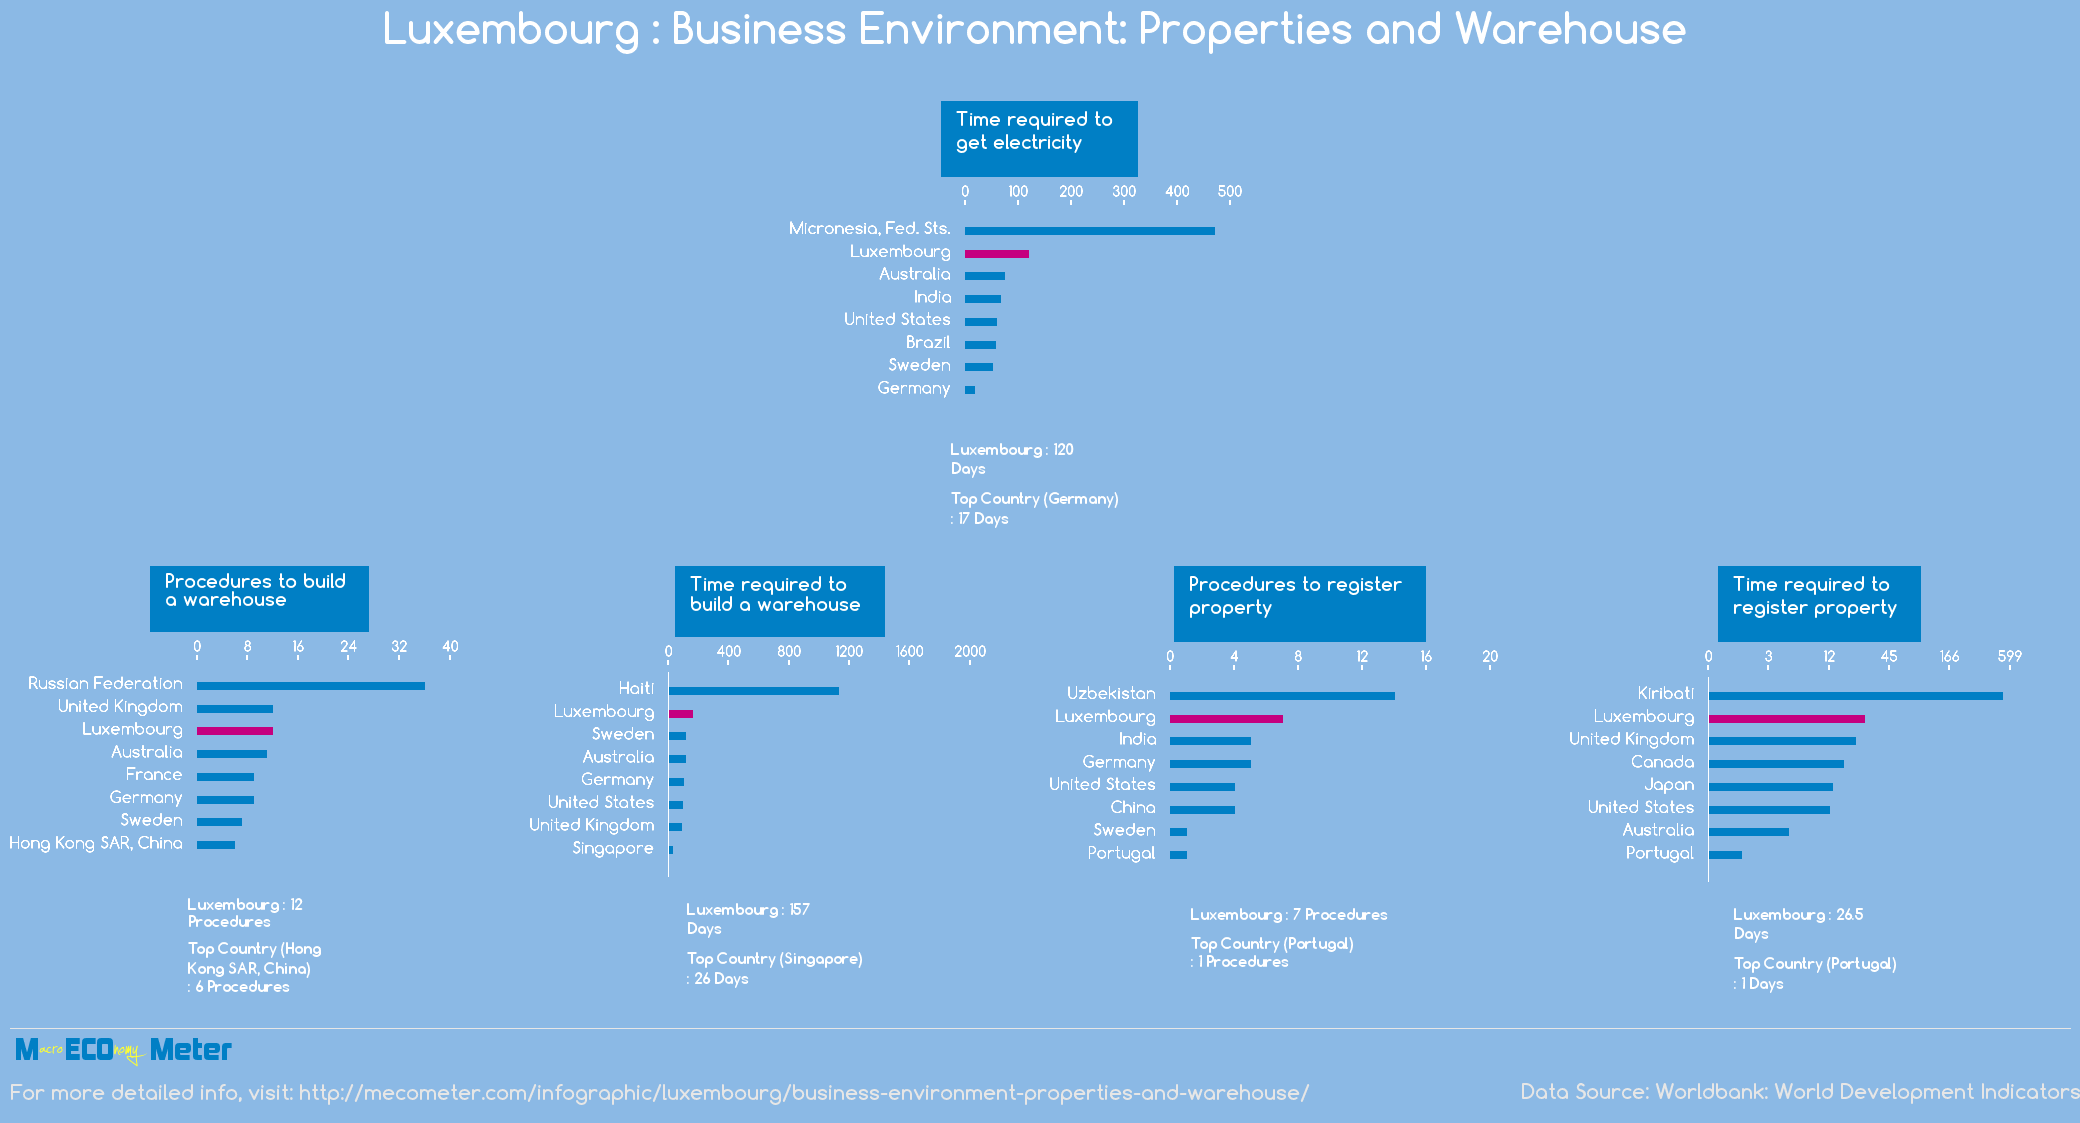 Luxembourg : Business Environment: Properties and Warehouse